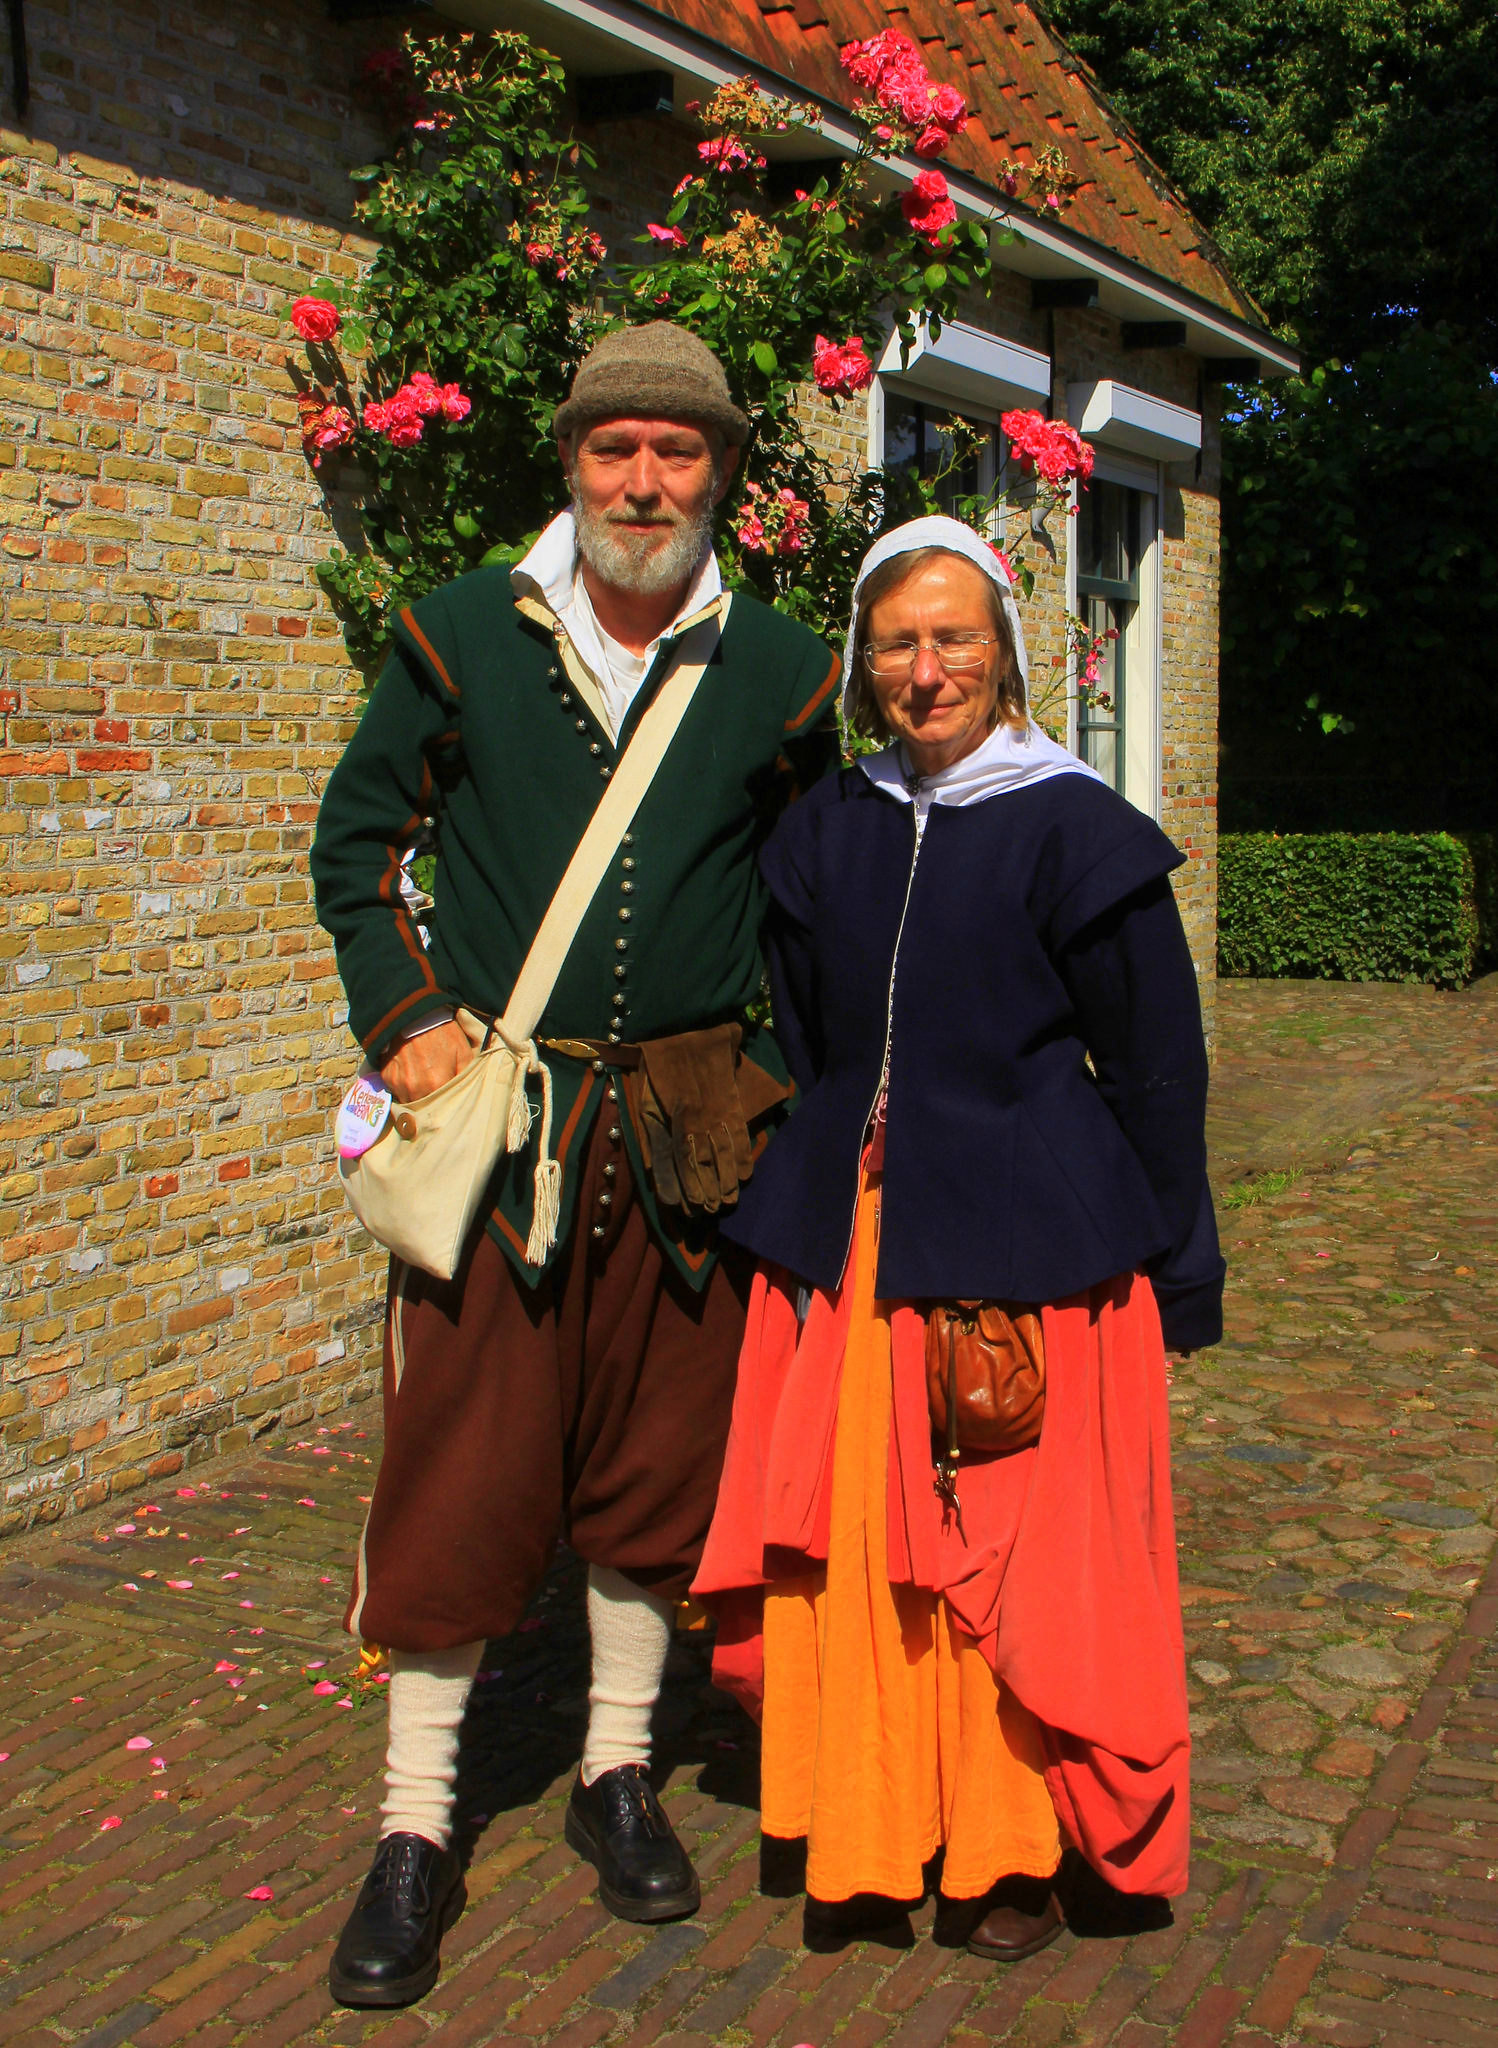 Village docents of fort bourtange wear period costumes